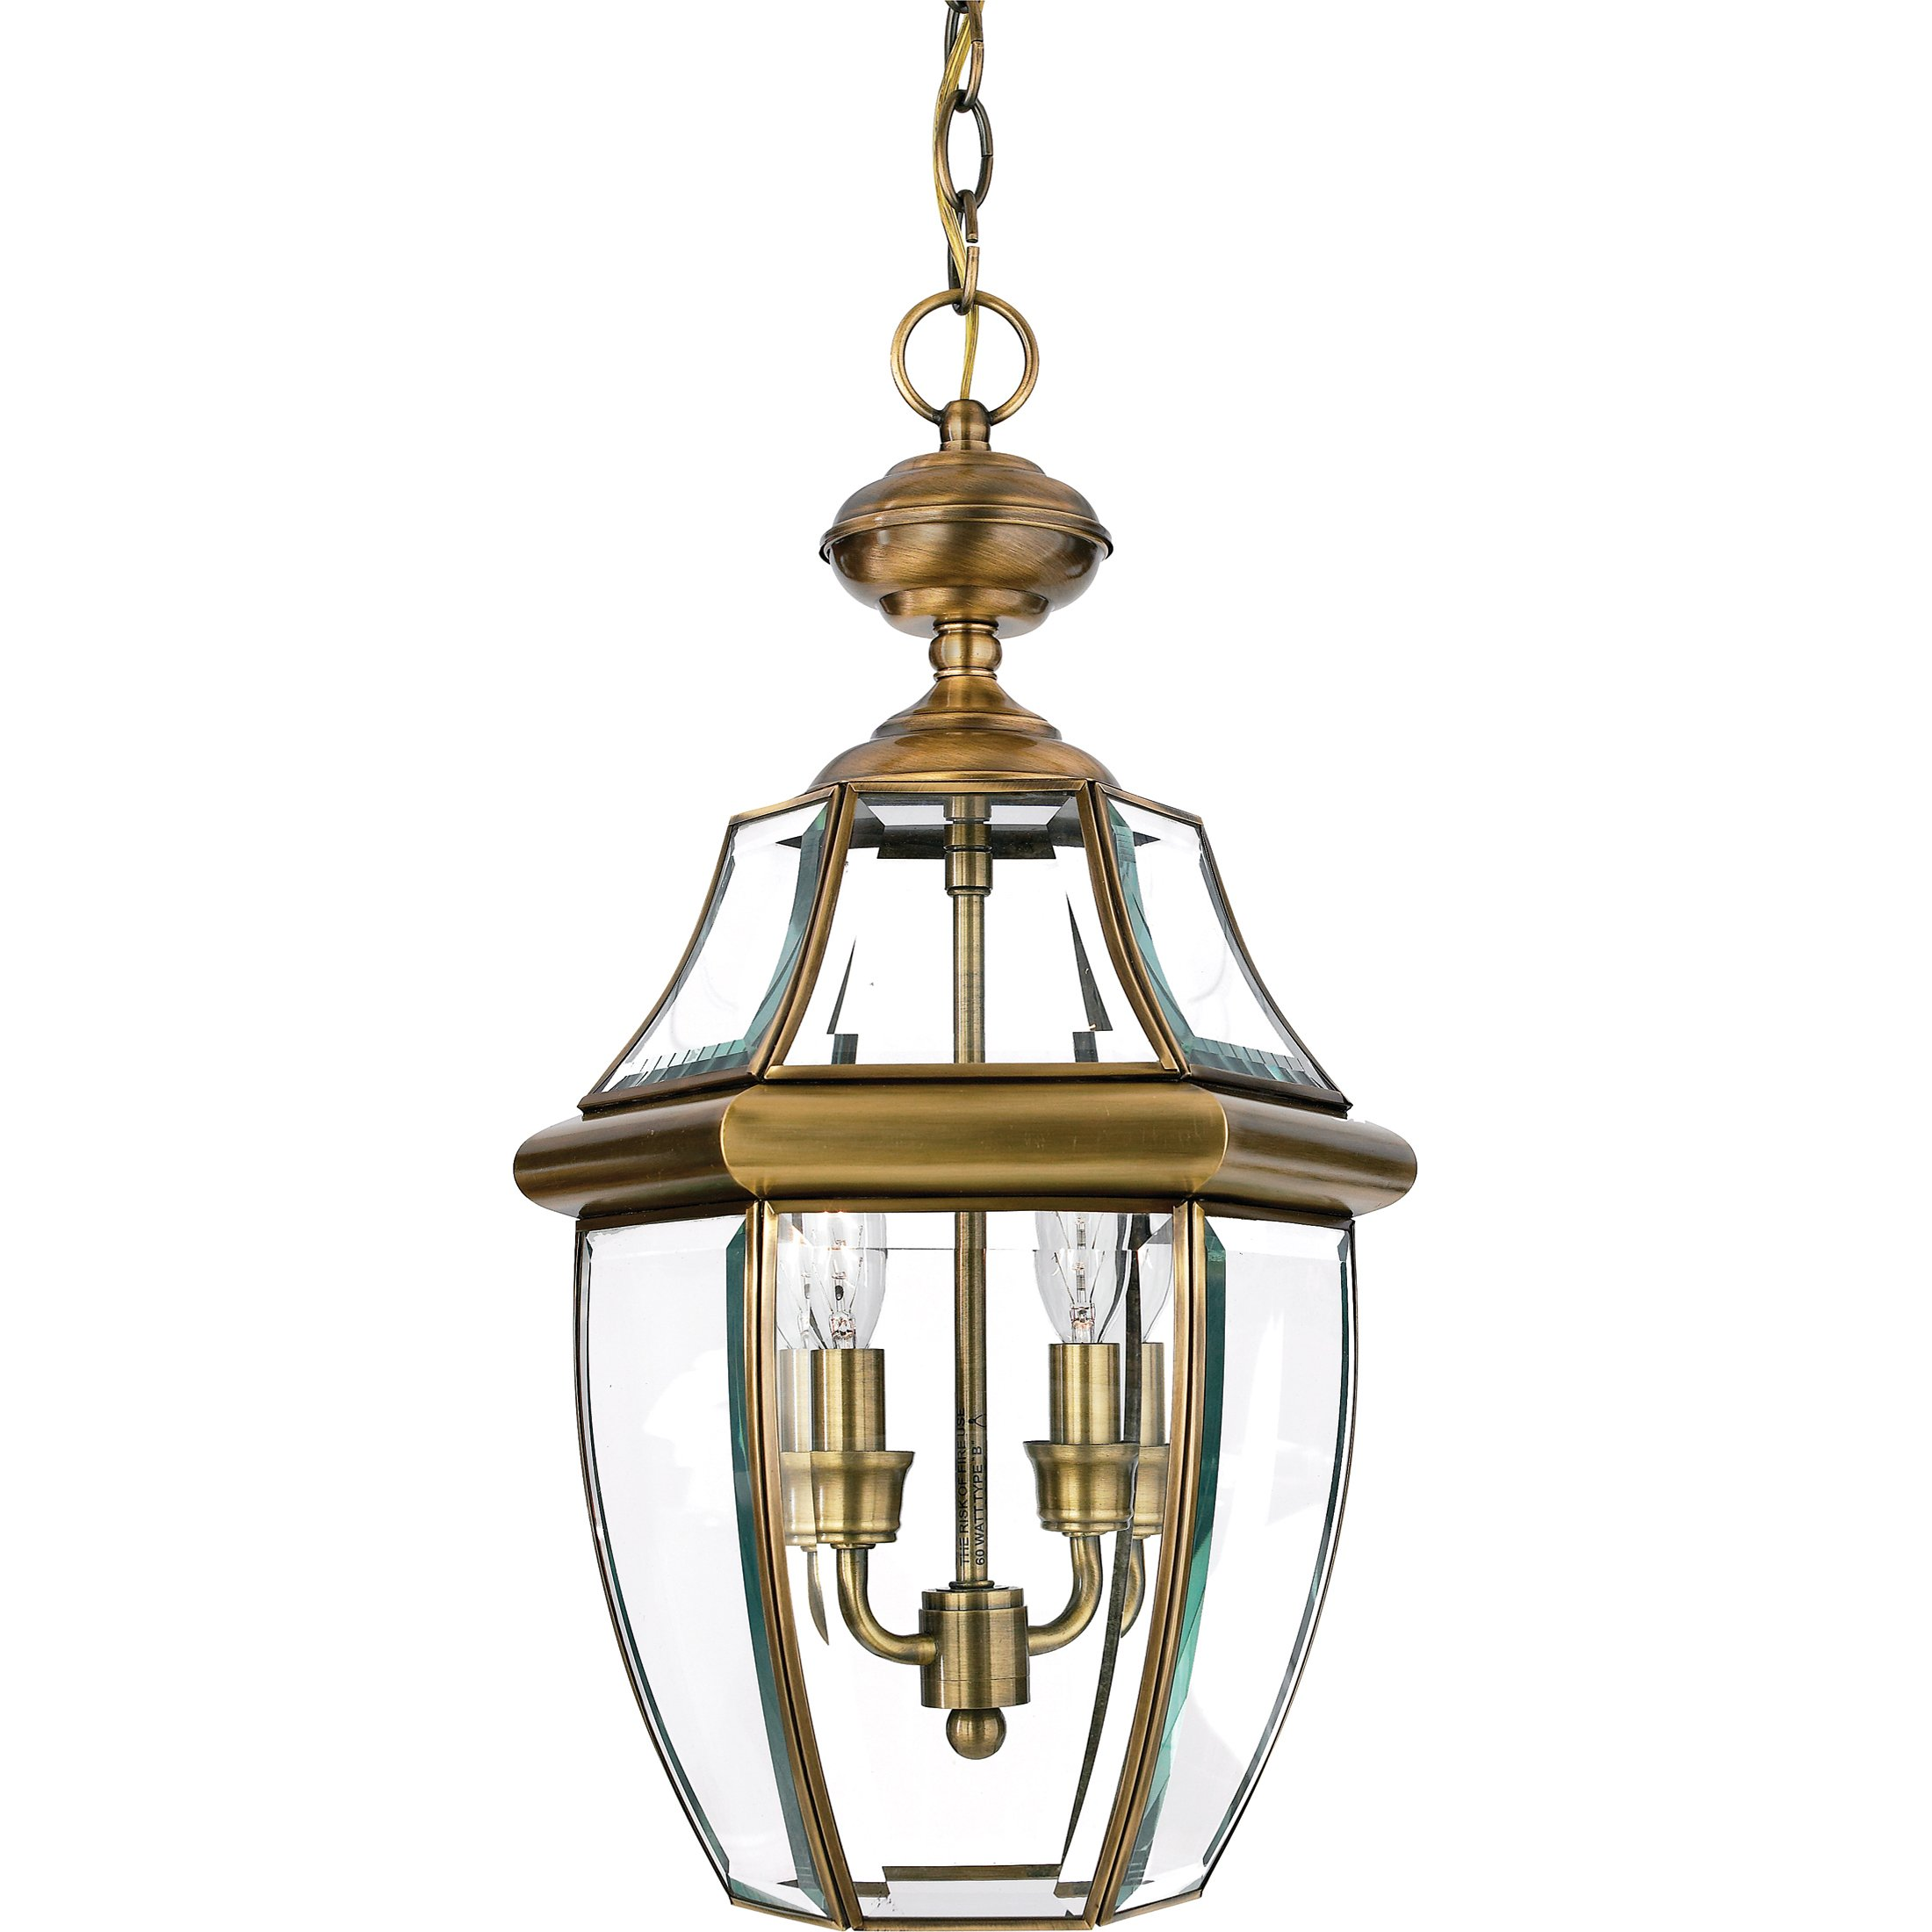 Quoizel NY1178A Newbury 2-Light Outdoor Lantern, Antique Brass by Quoizel